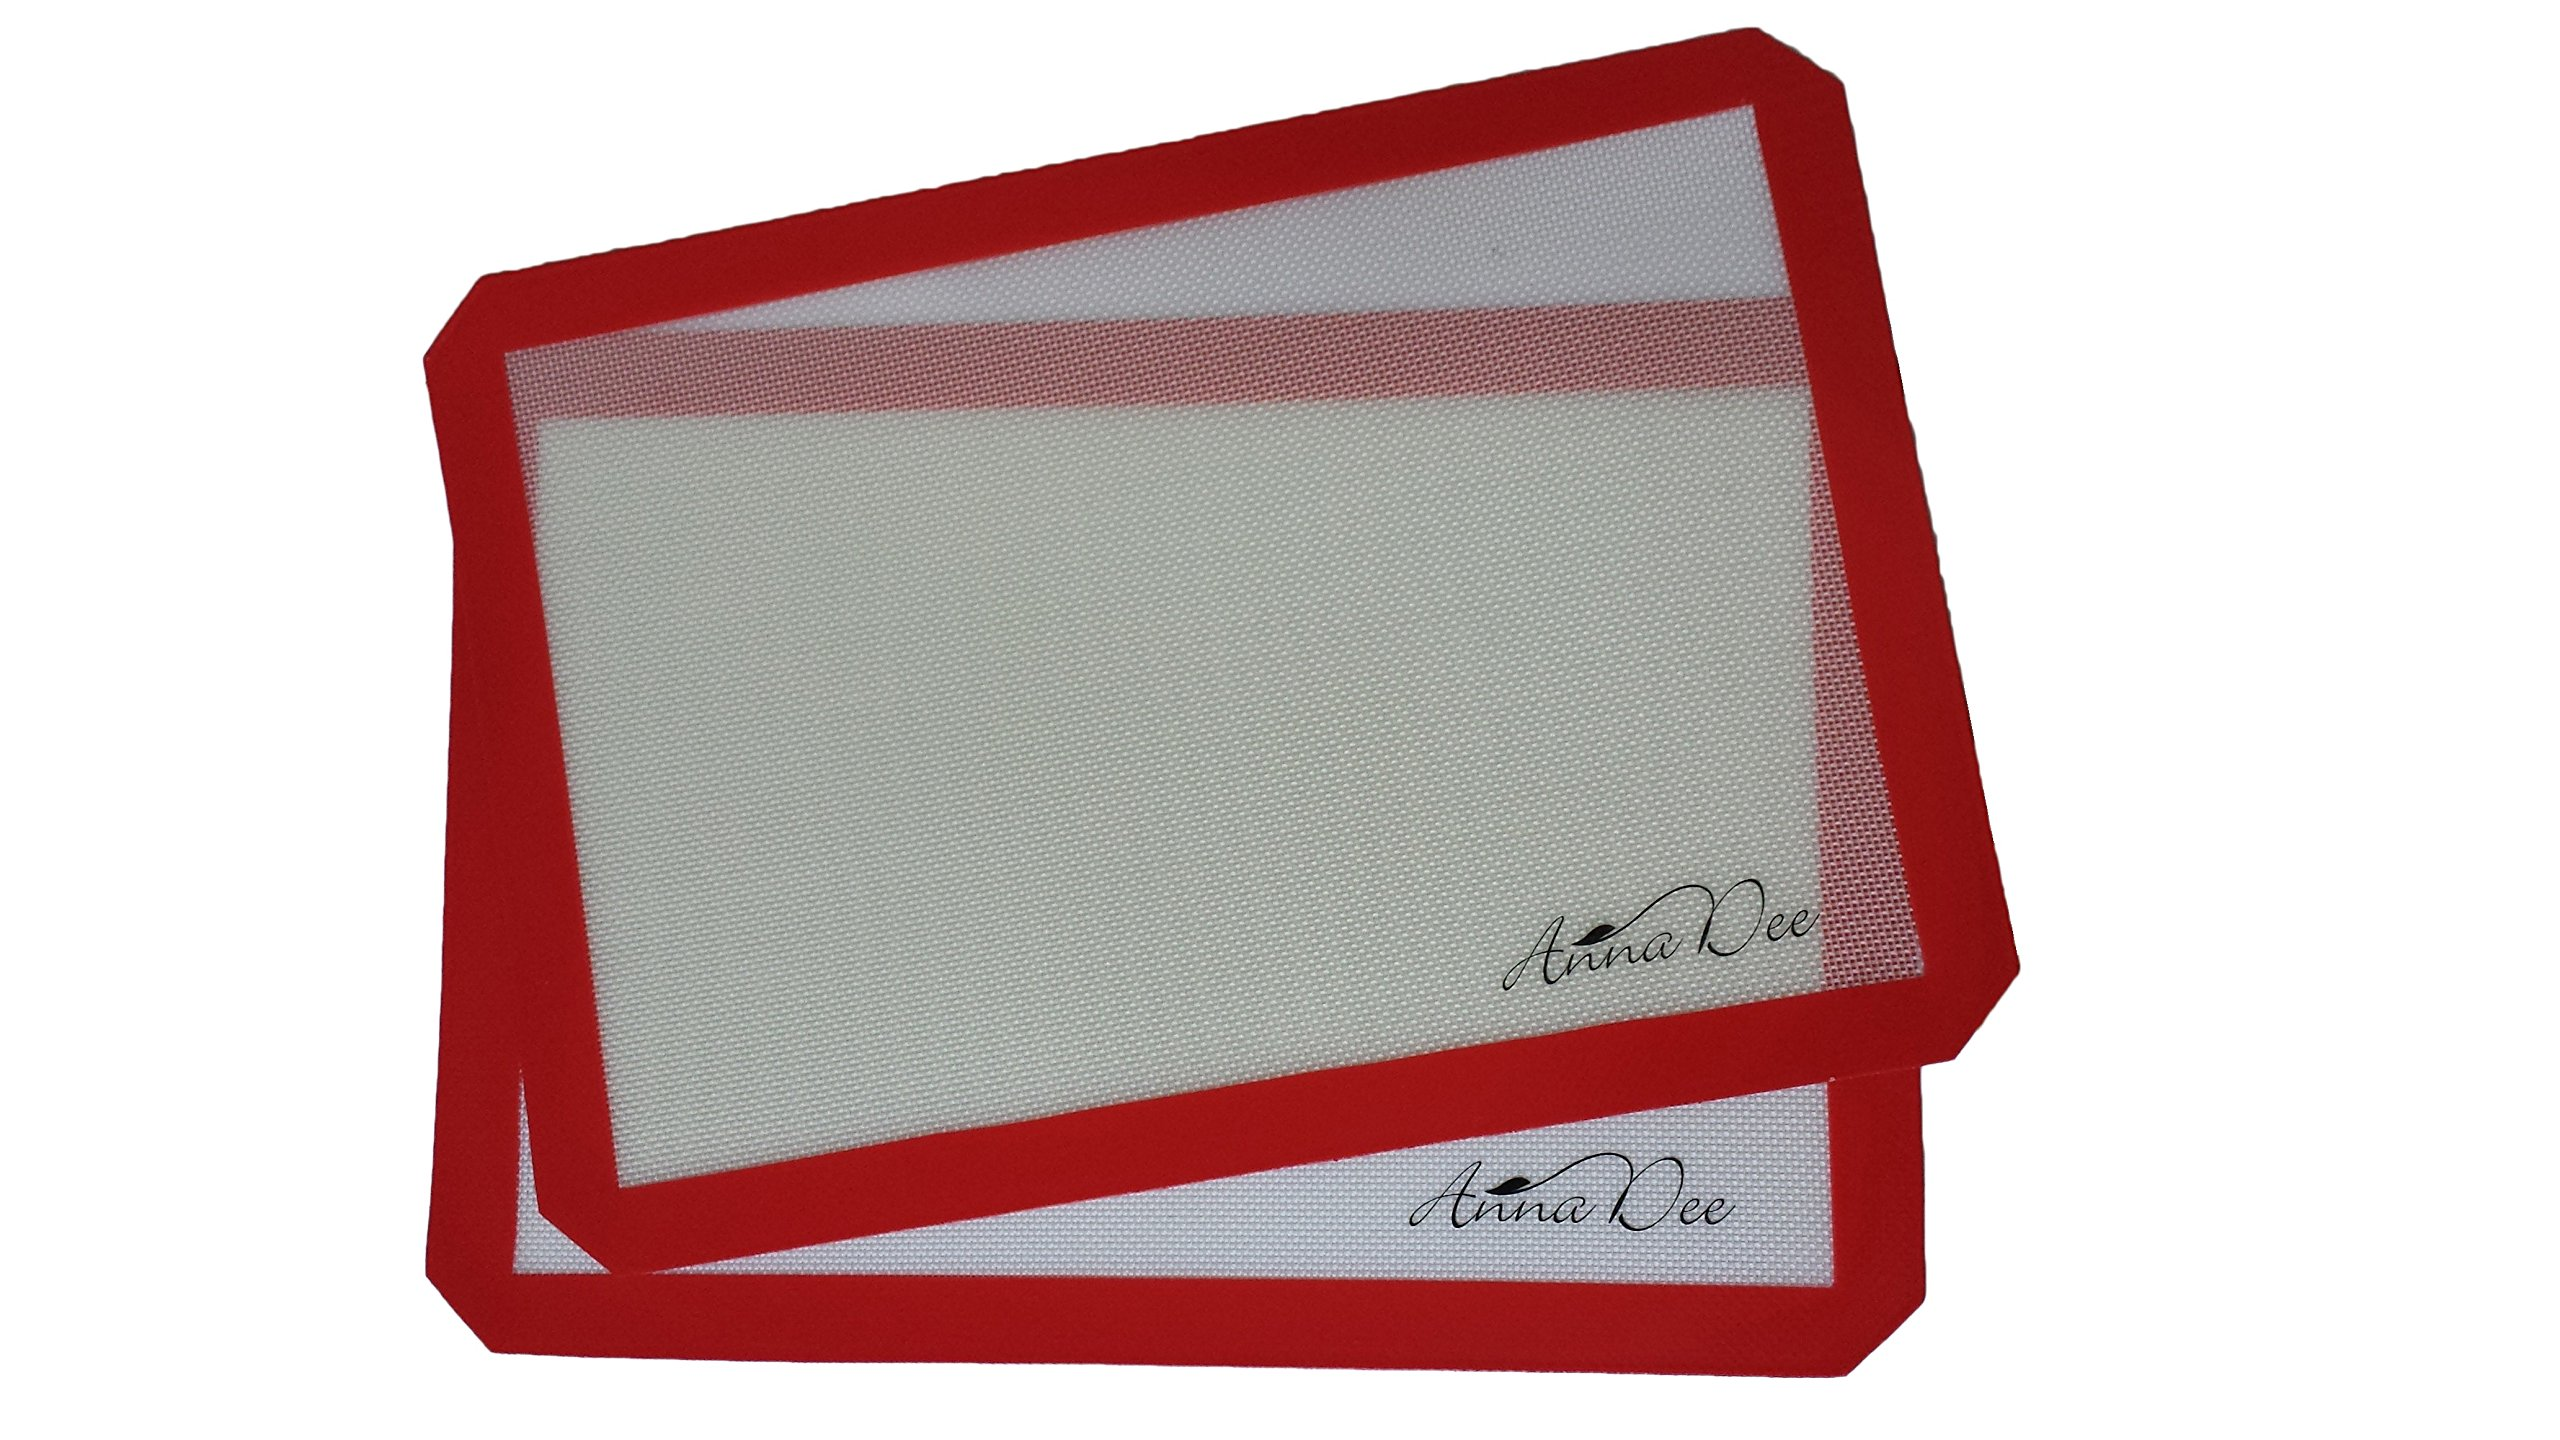 Annadee Non-stick Silicone Baking Mat (Set of 2), Half Sheet Pan Size, 16 1/2 X 11 5/8 Inches